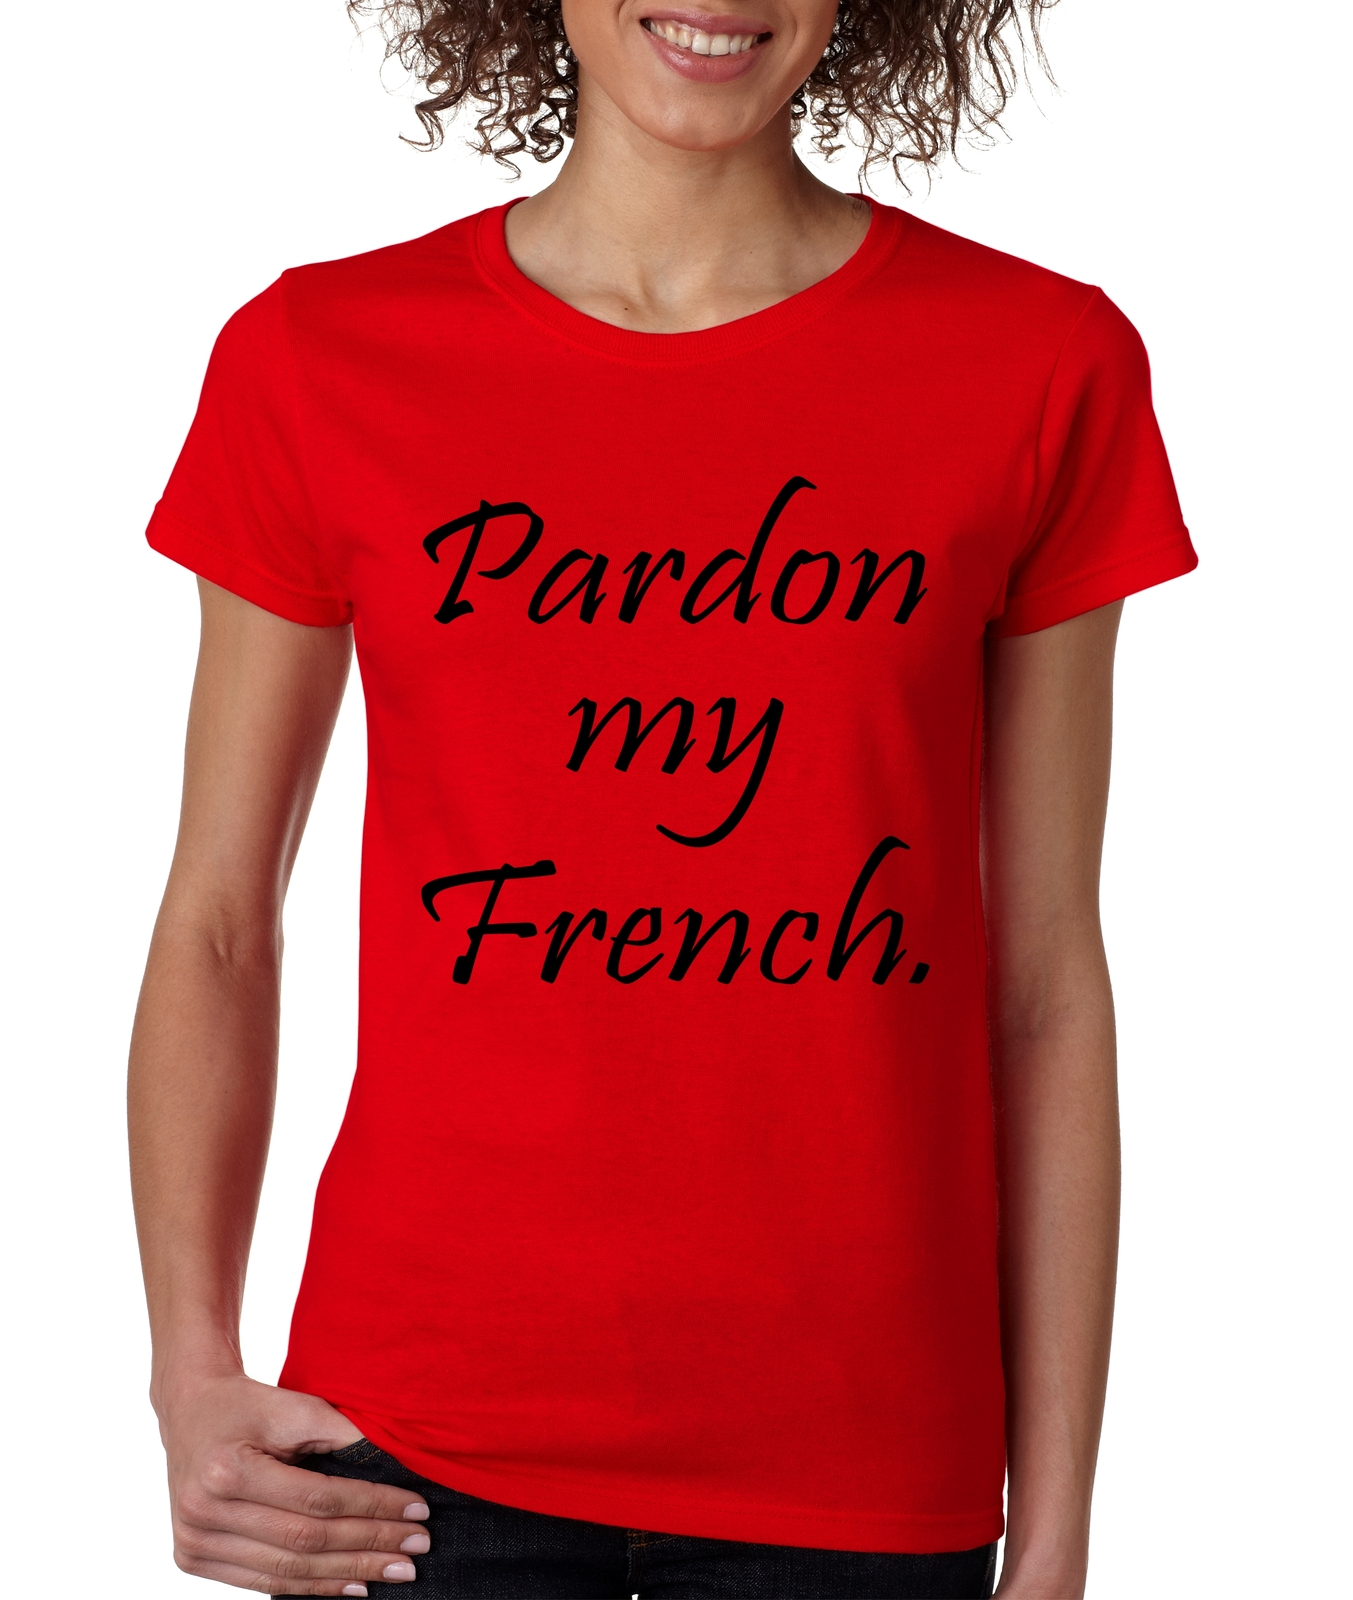 women 39 s t shirt pardon my french cool humor t shirt t. Black Bedroom Furniture Sets. Home Design Ideas